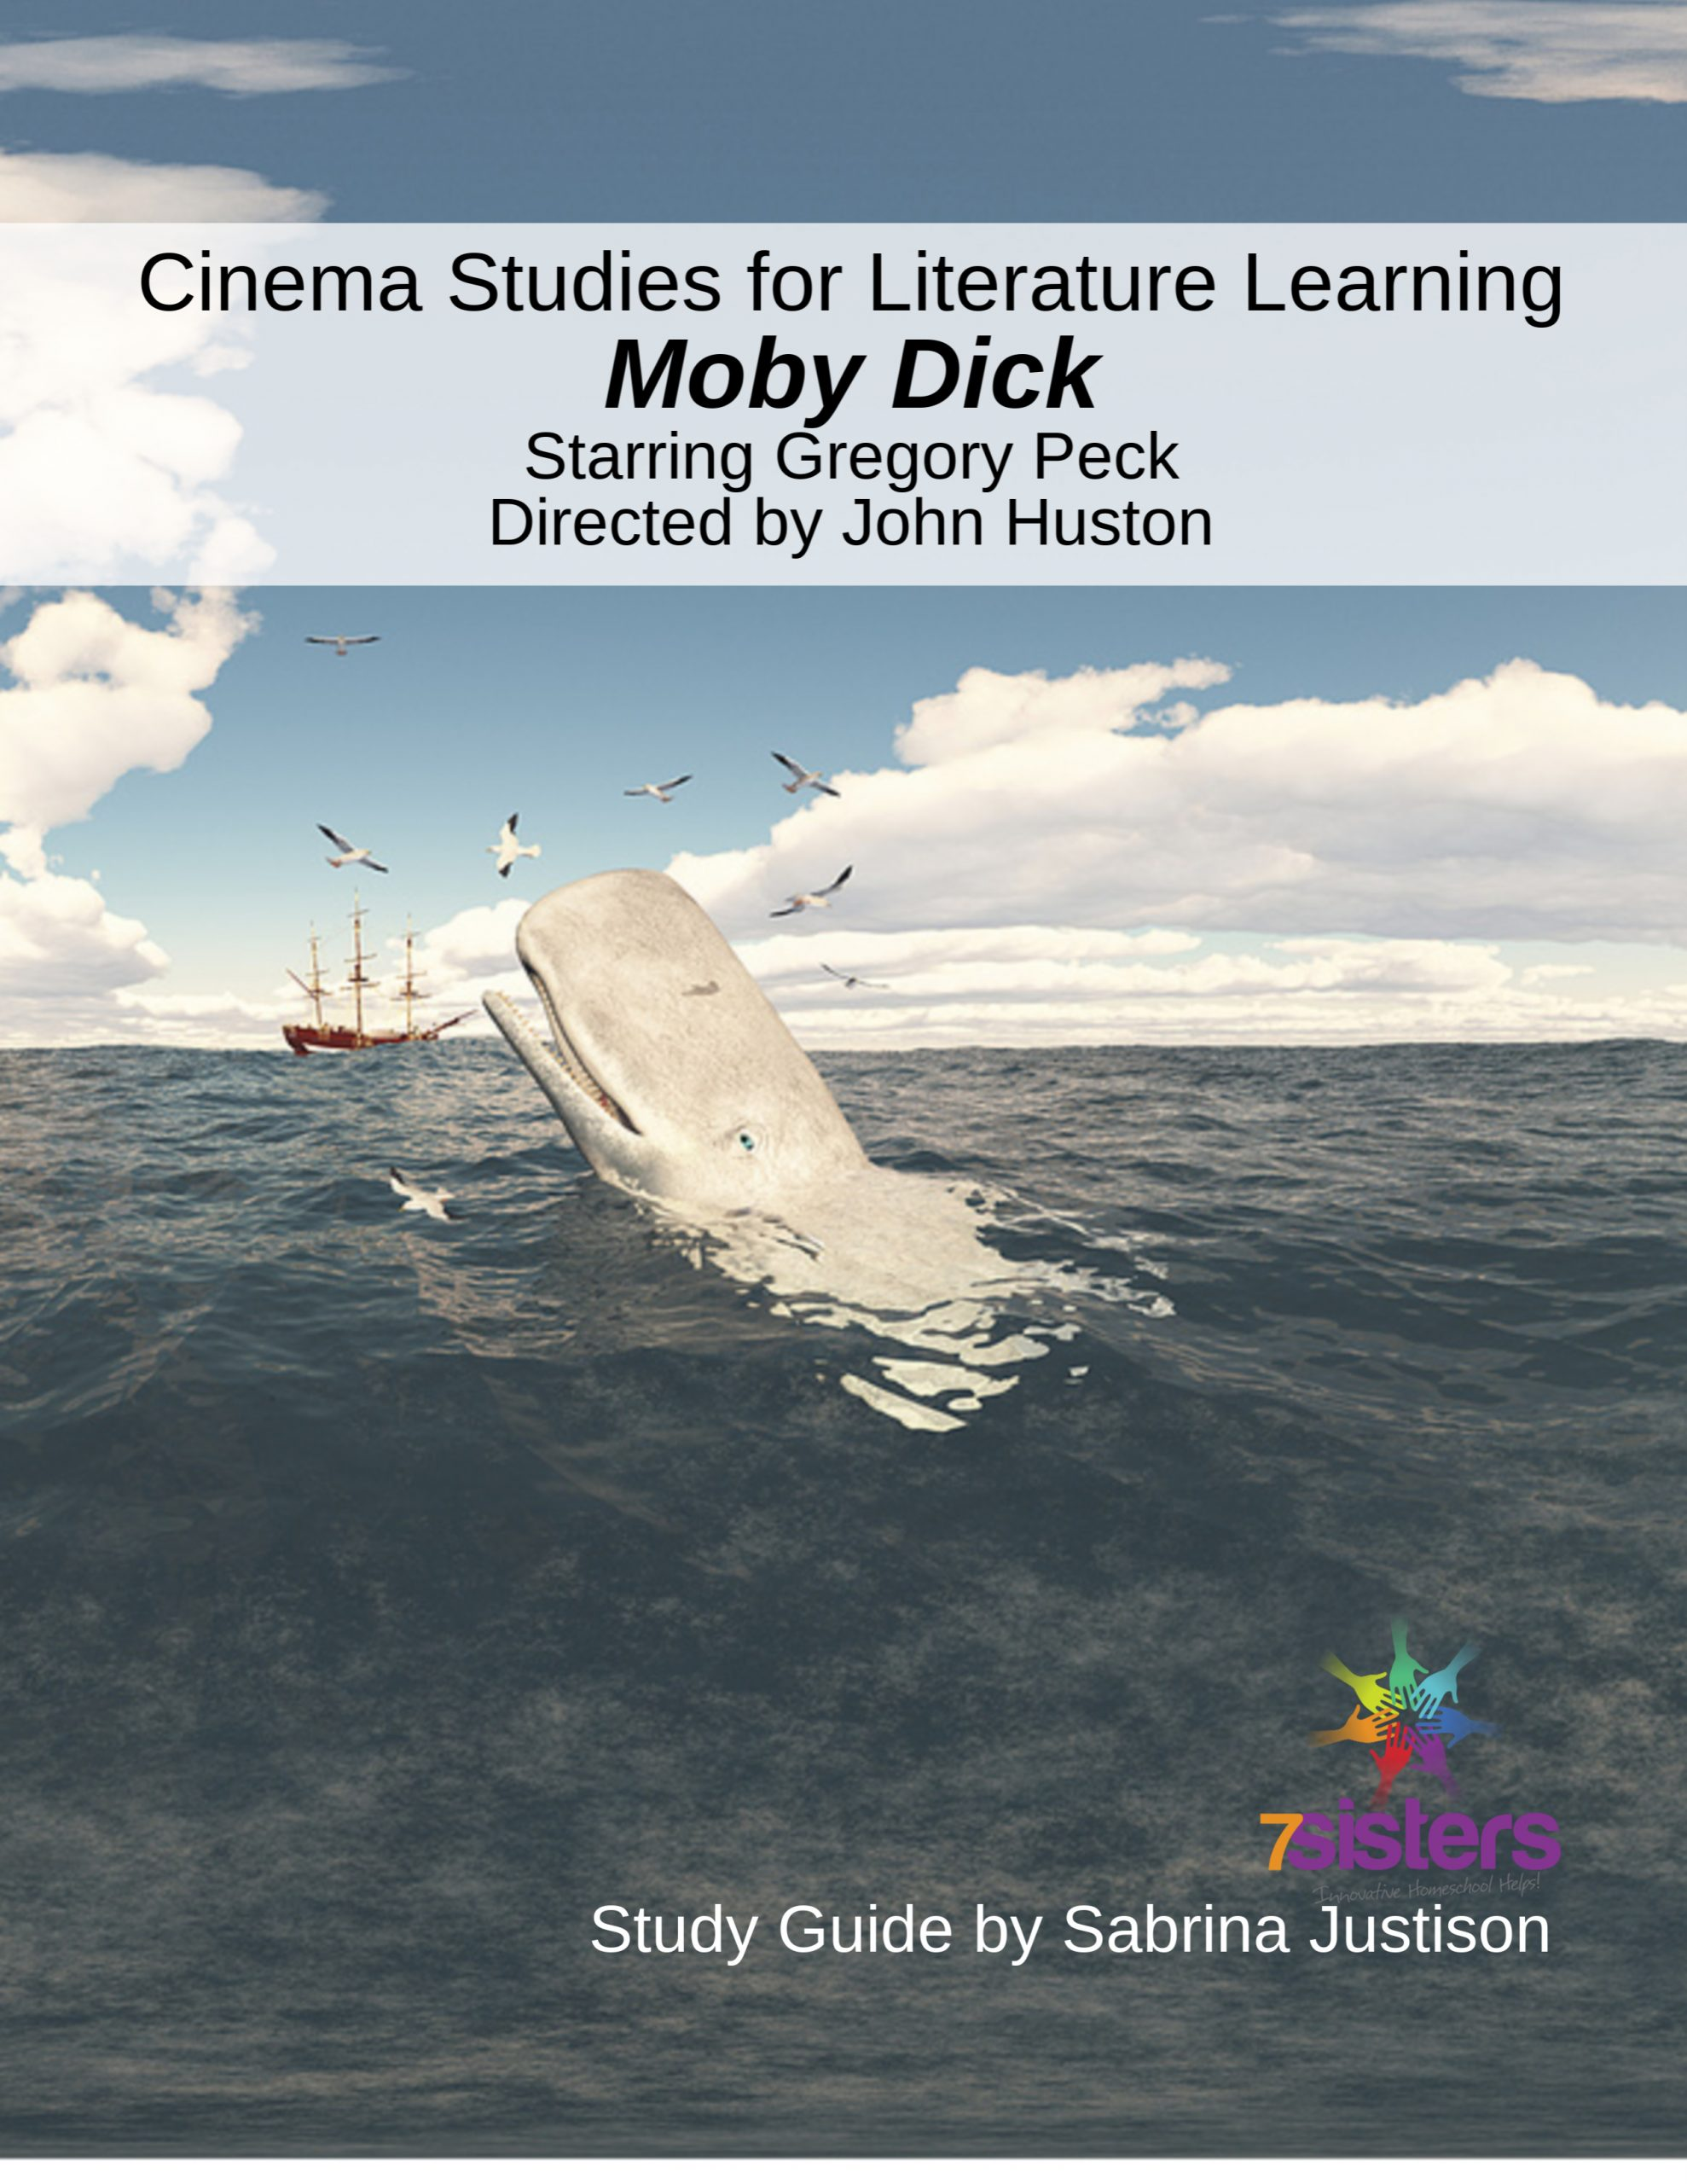 Cinema Study Guide Moby Dick